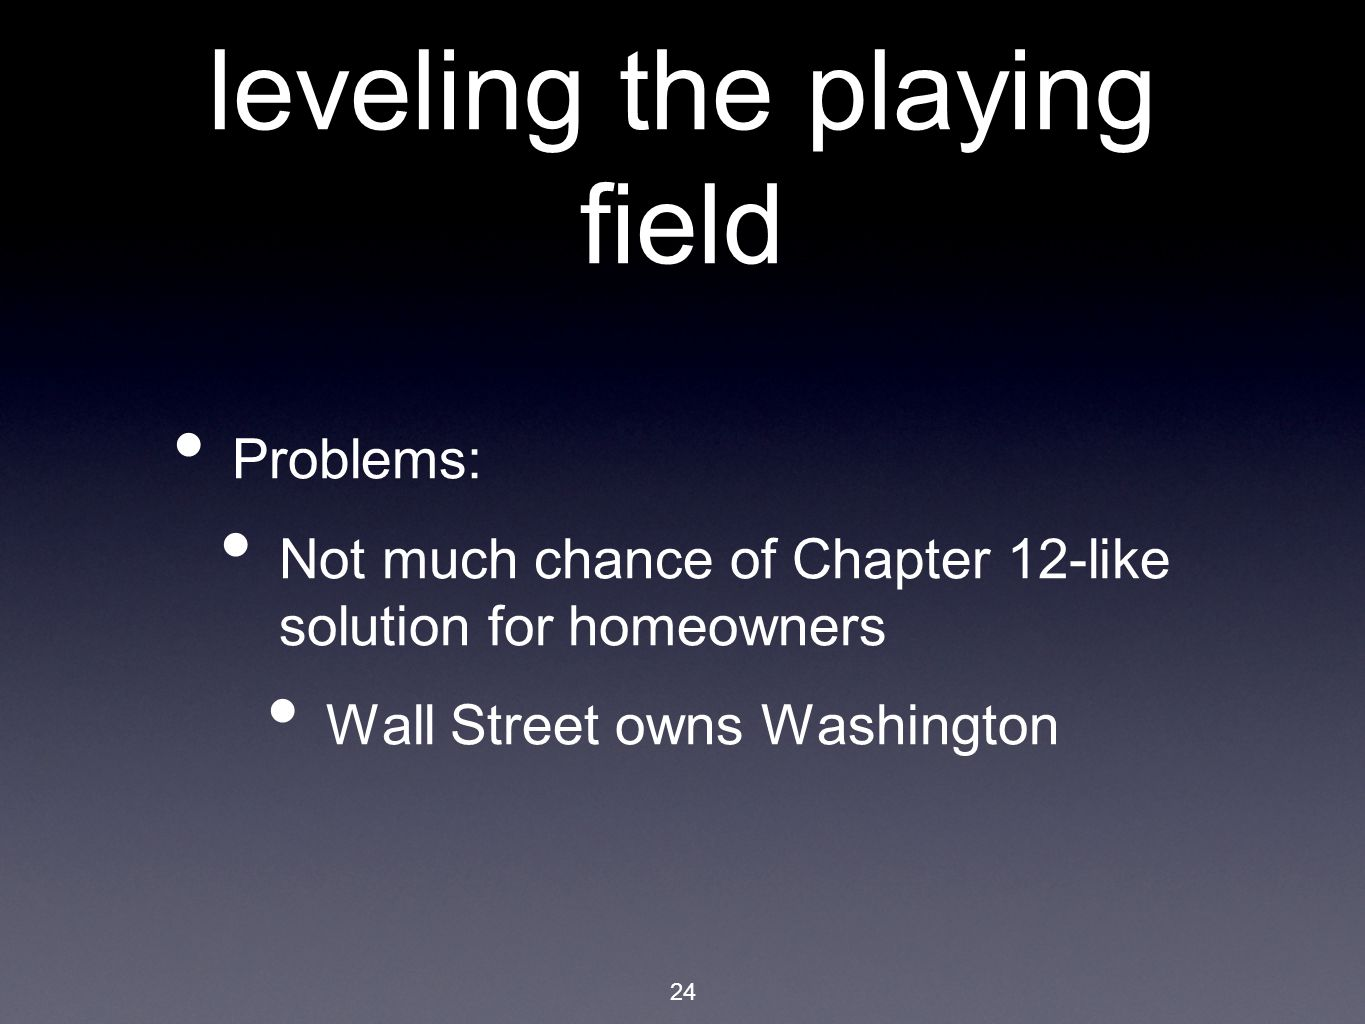 24 leveling the playing field Problems: Not much chance of Chapter 12-like solution for homeowners Wall Street owns Washington